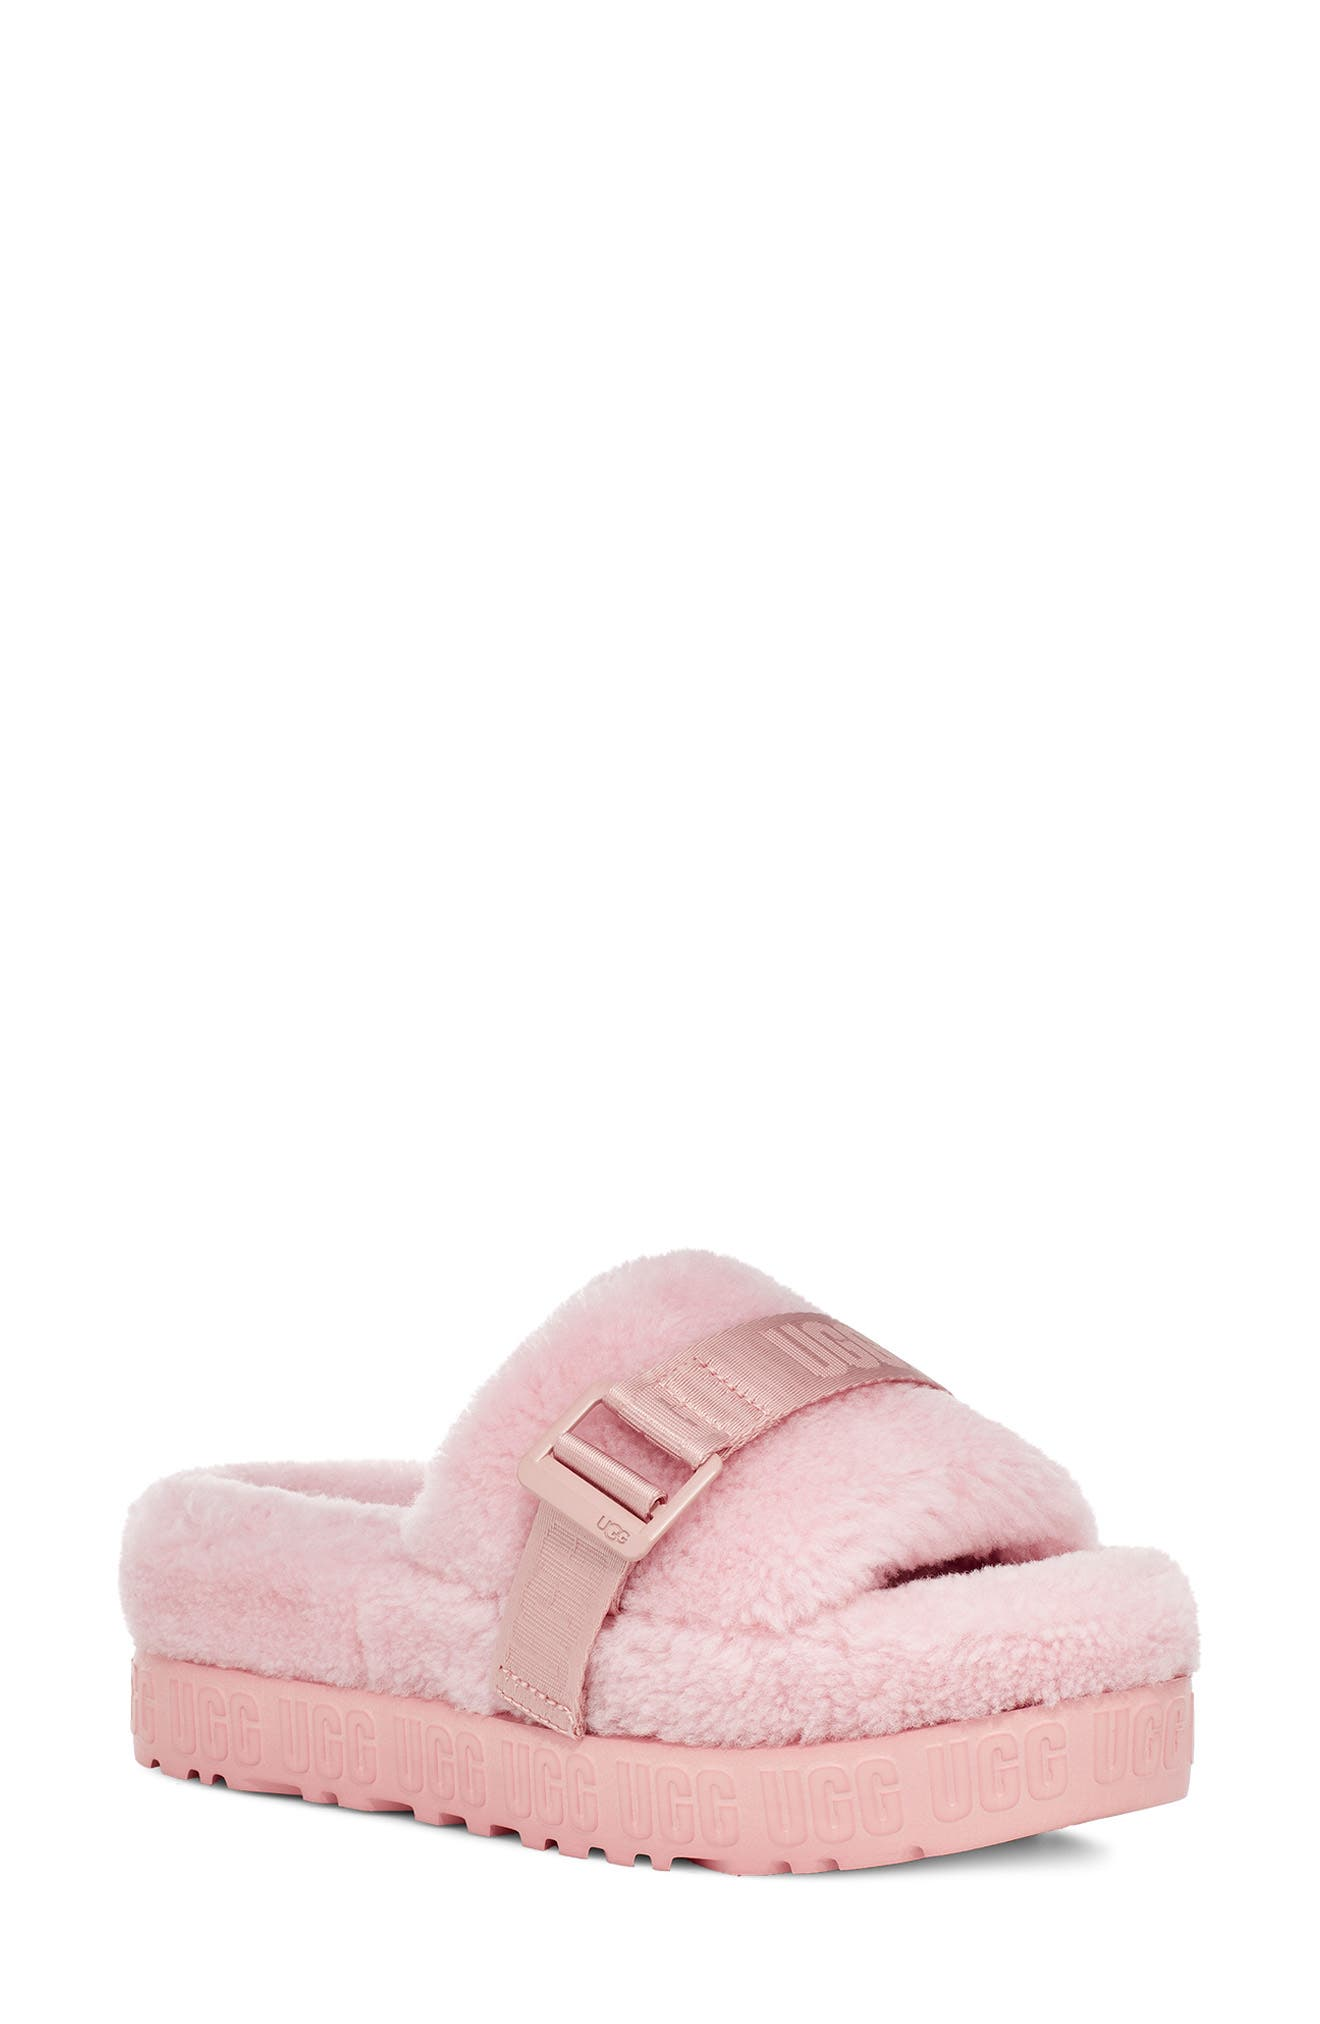 Plush genuine shearling adds undeniable warmth and comfort to an easy slipper with a rubber sole for indoor/outdoor wear. Style Name: UGG Fluffita Genuine Shearling Slipper (Women). Style Number: 6083405. Available in stores.